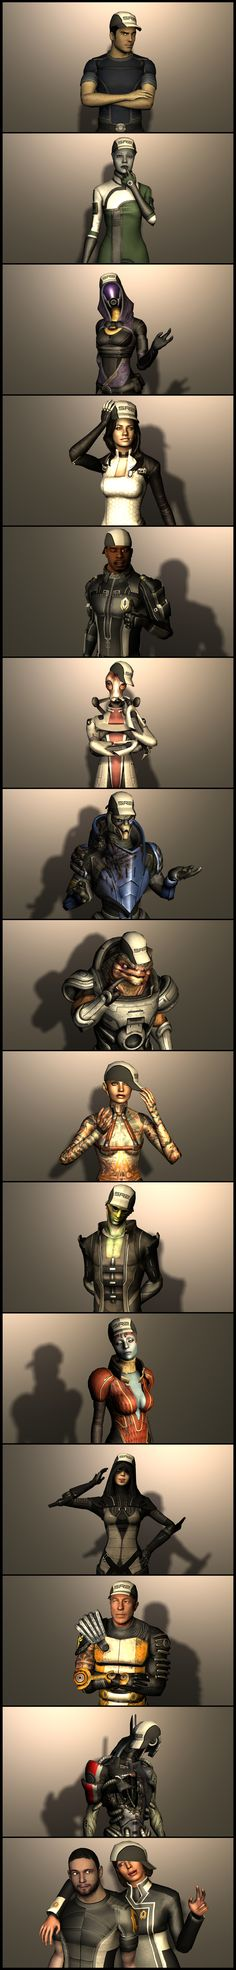 Mass effect. And this is why we don't steal Joker 's hat...although it would be funny to see Legion like that xD